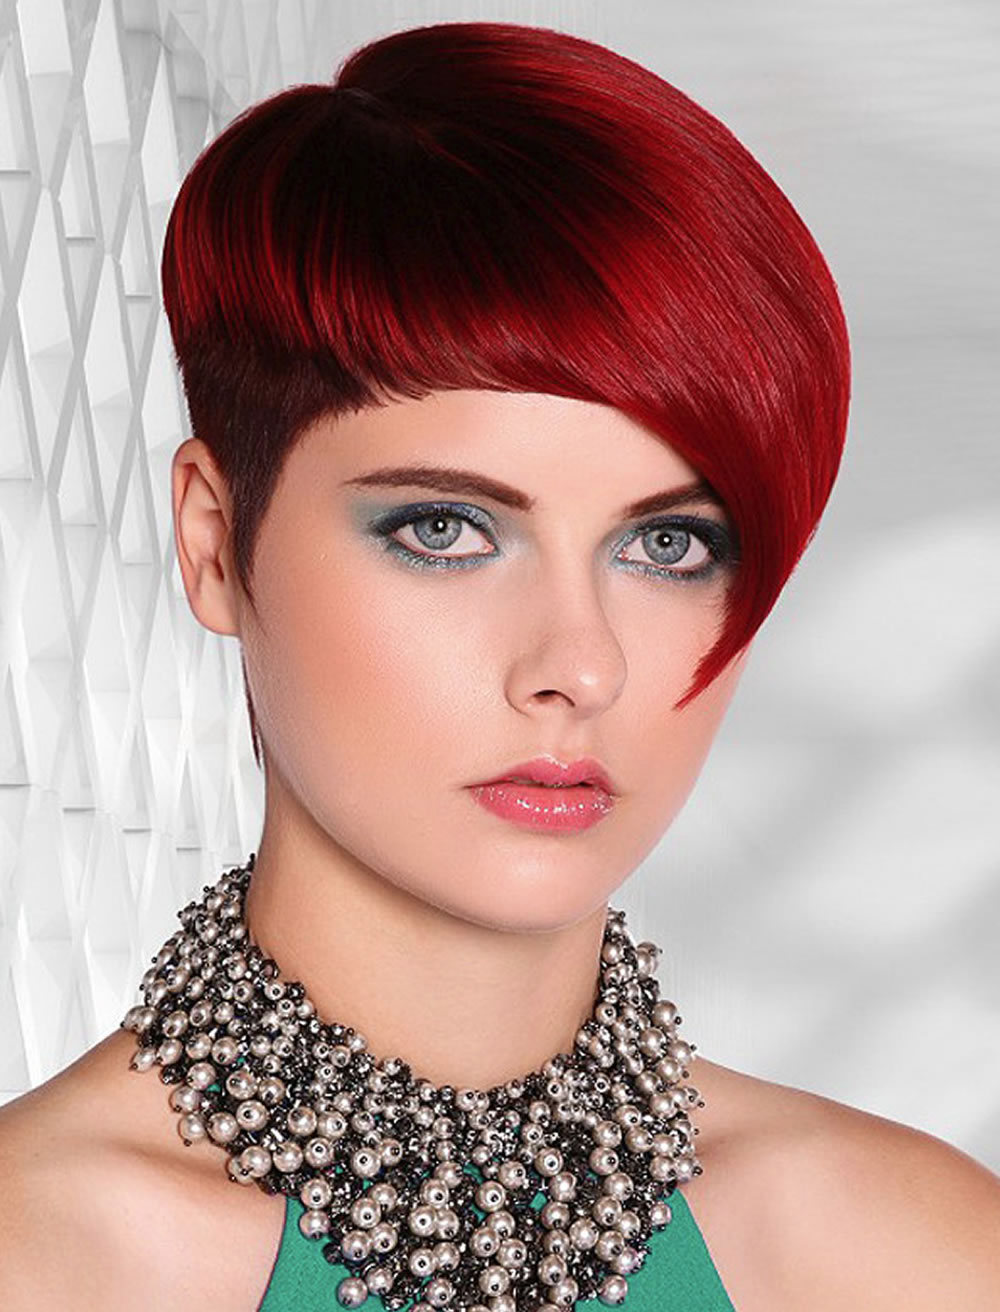 Short Hair Hairstyles For Spring & Summer 2018 2019 – Hairstyles Regarding Summer Short Haircuts (View 15 of 25)